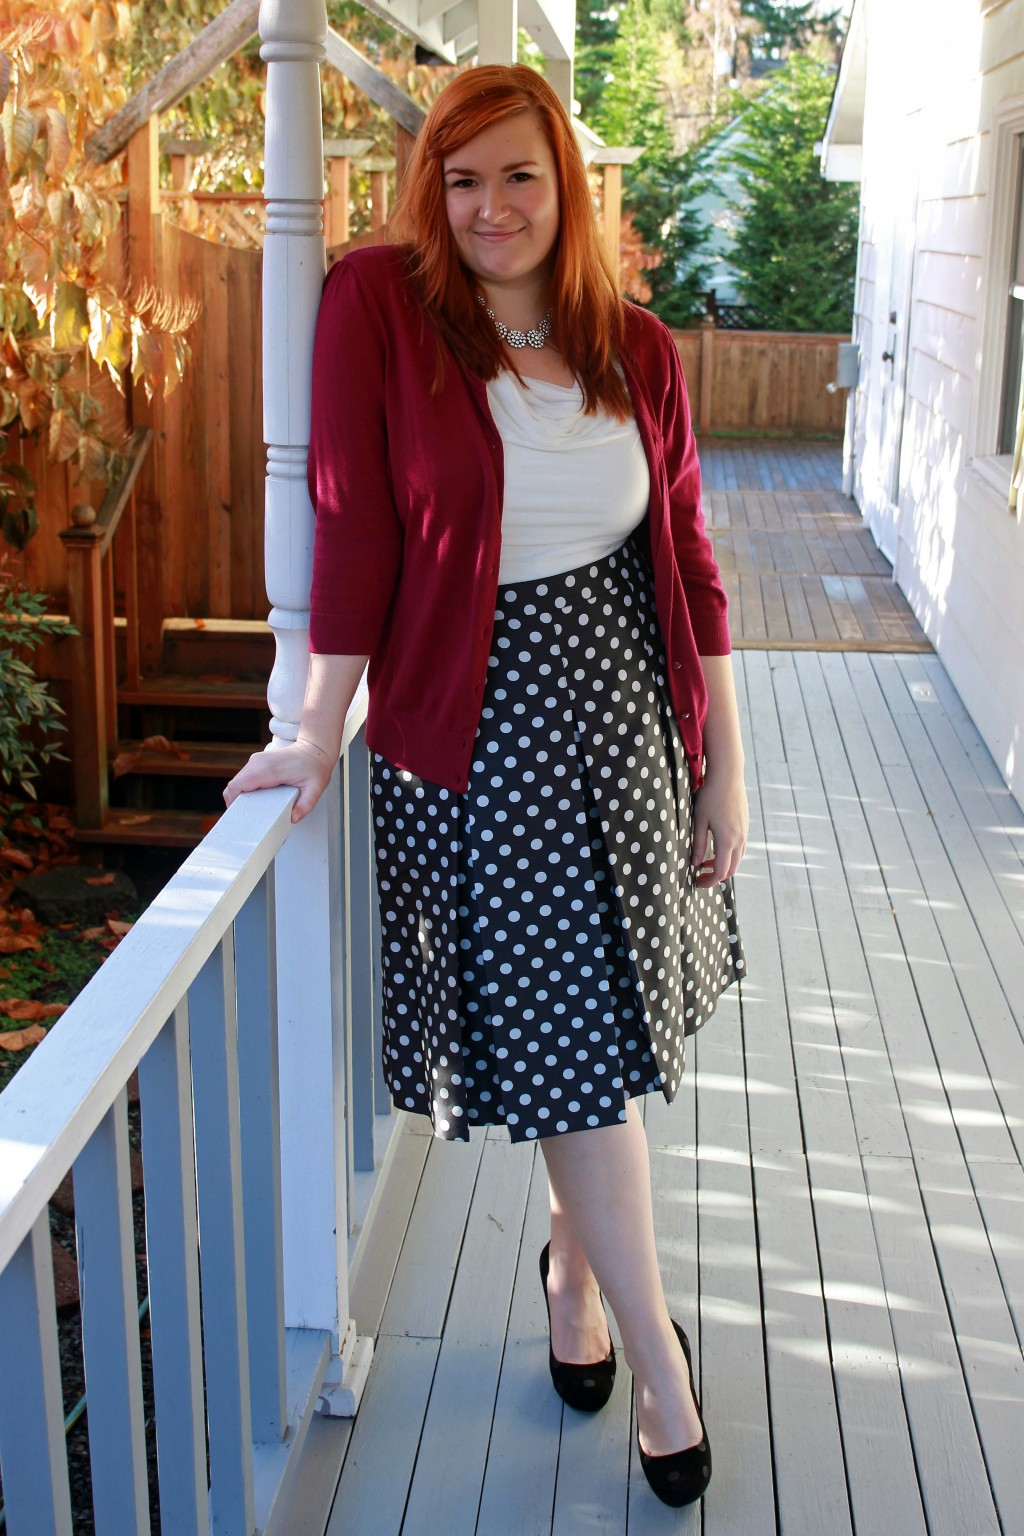 Wearing Polka Dots to the Office